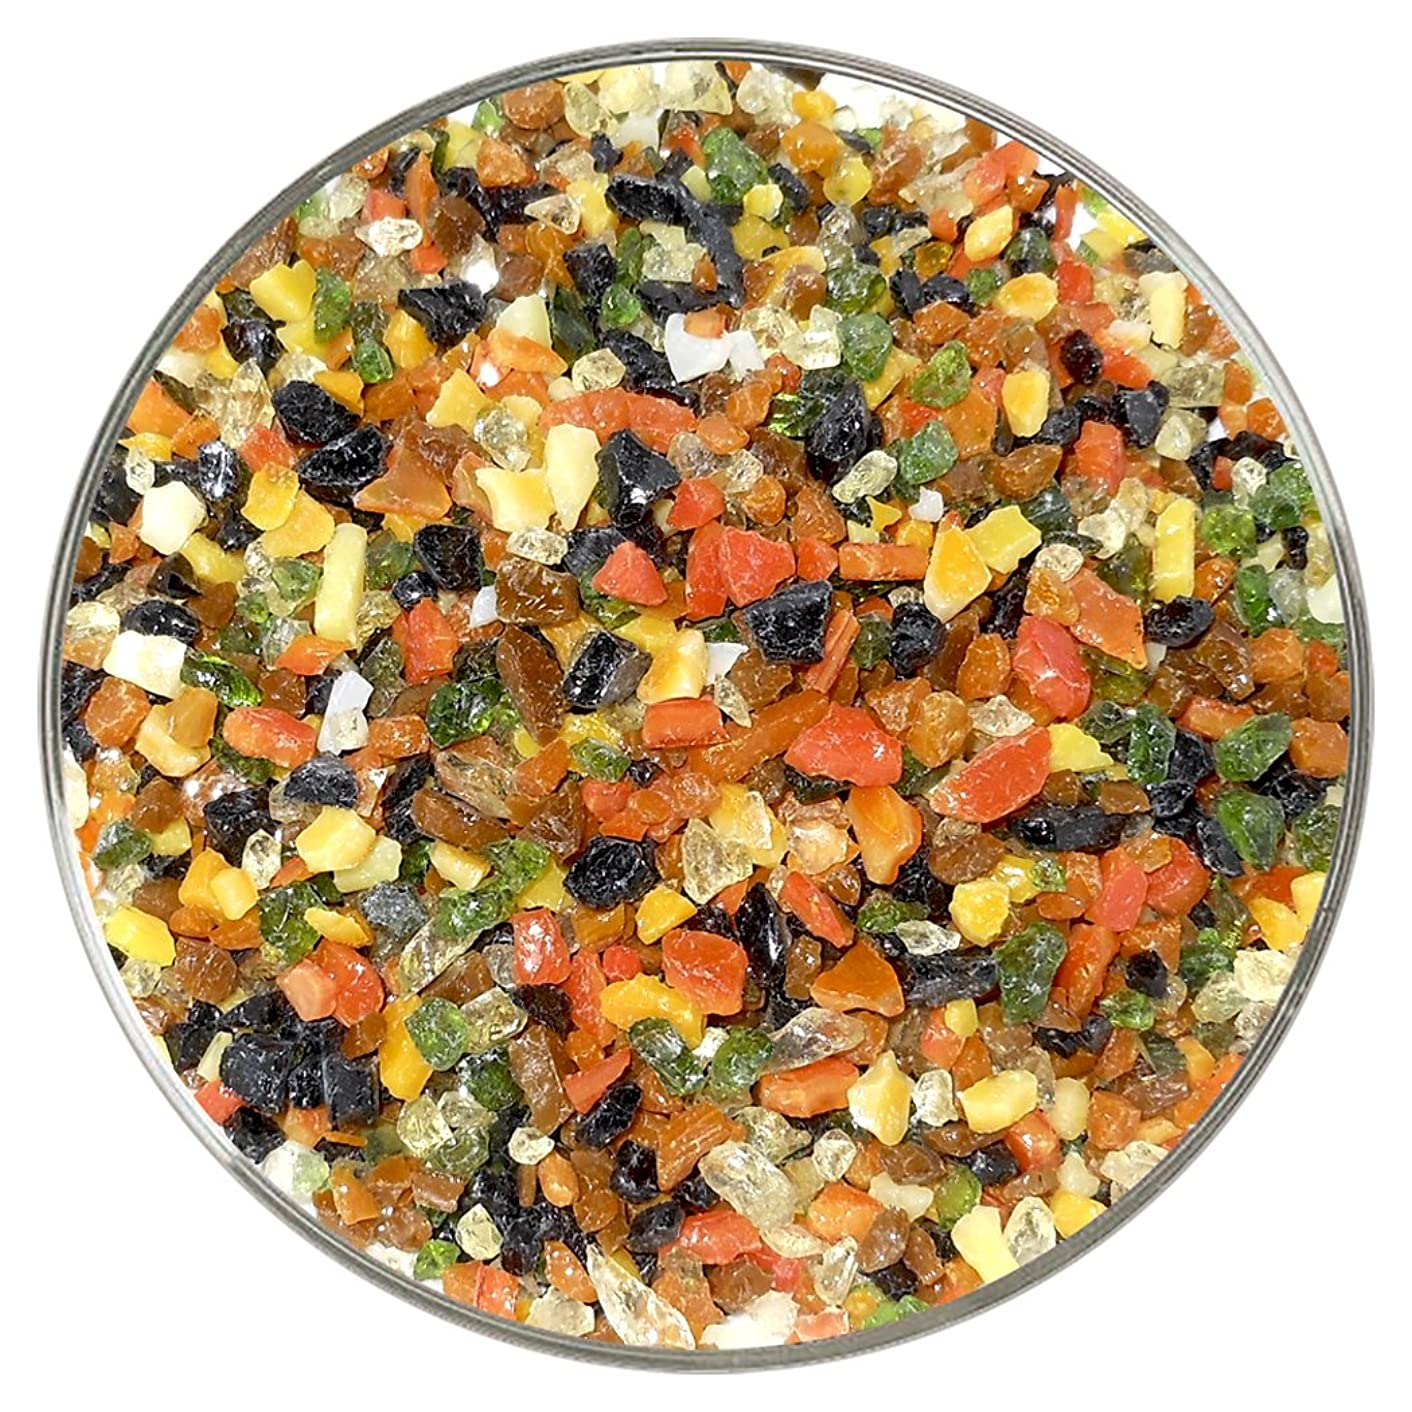 Cinnamon & Spice Designer Fusible Glass Coarse Frit Mix - 4oz - 90COE - Made From Bullseye Glass